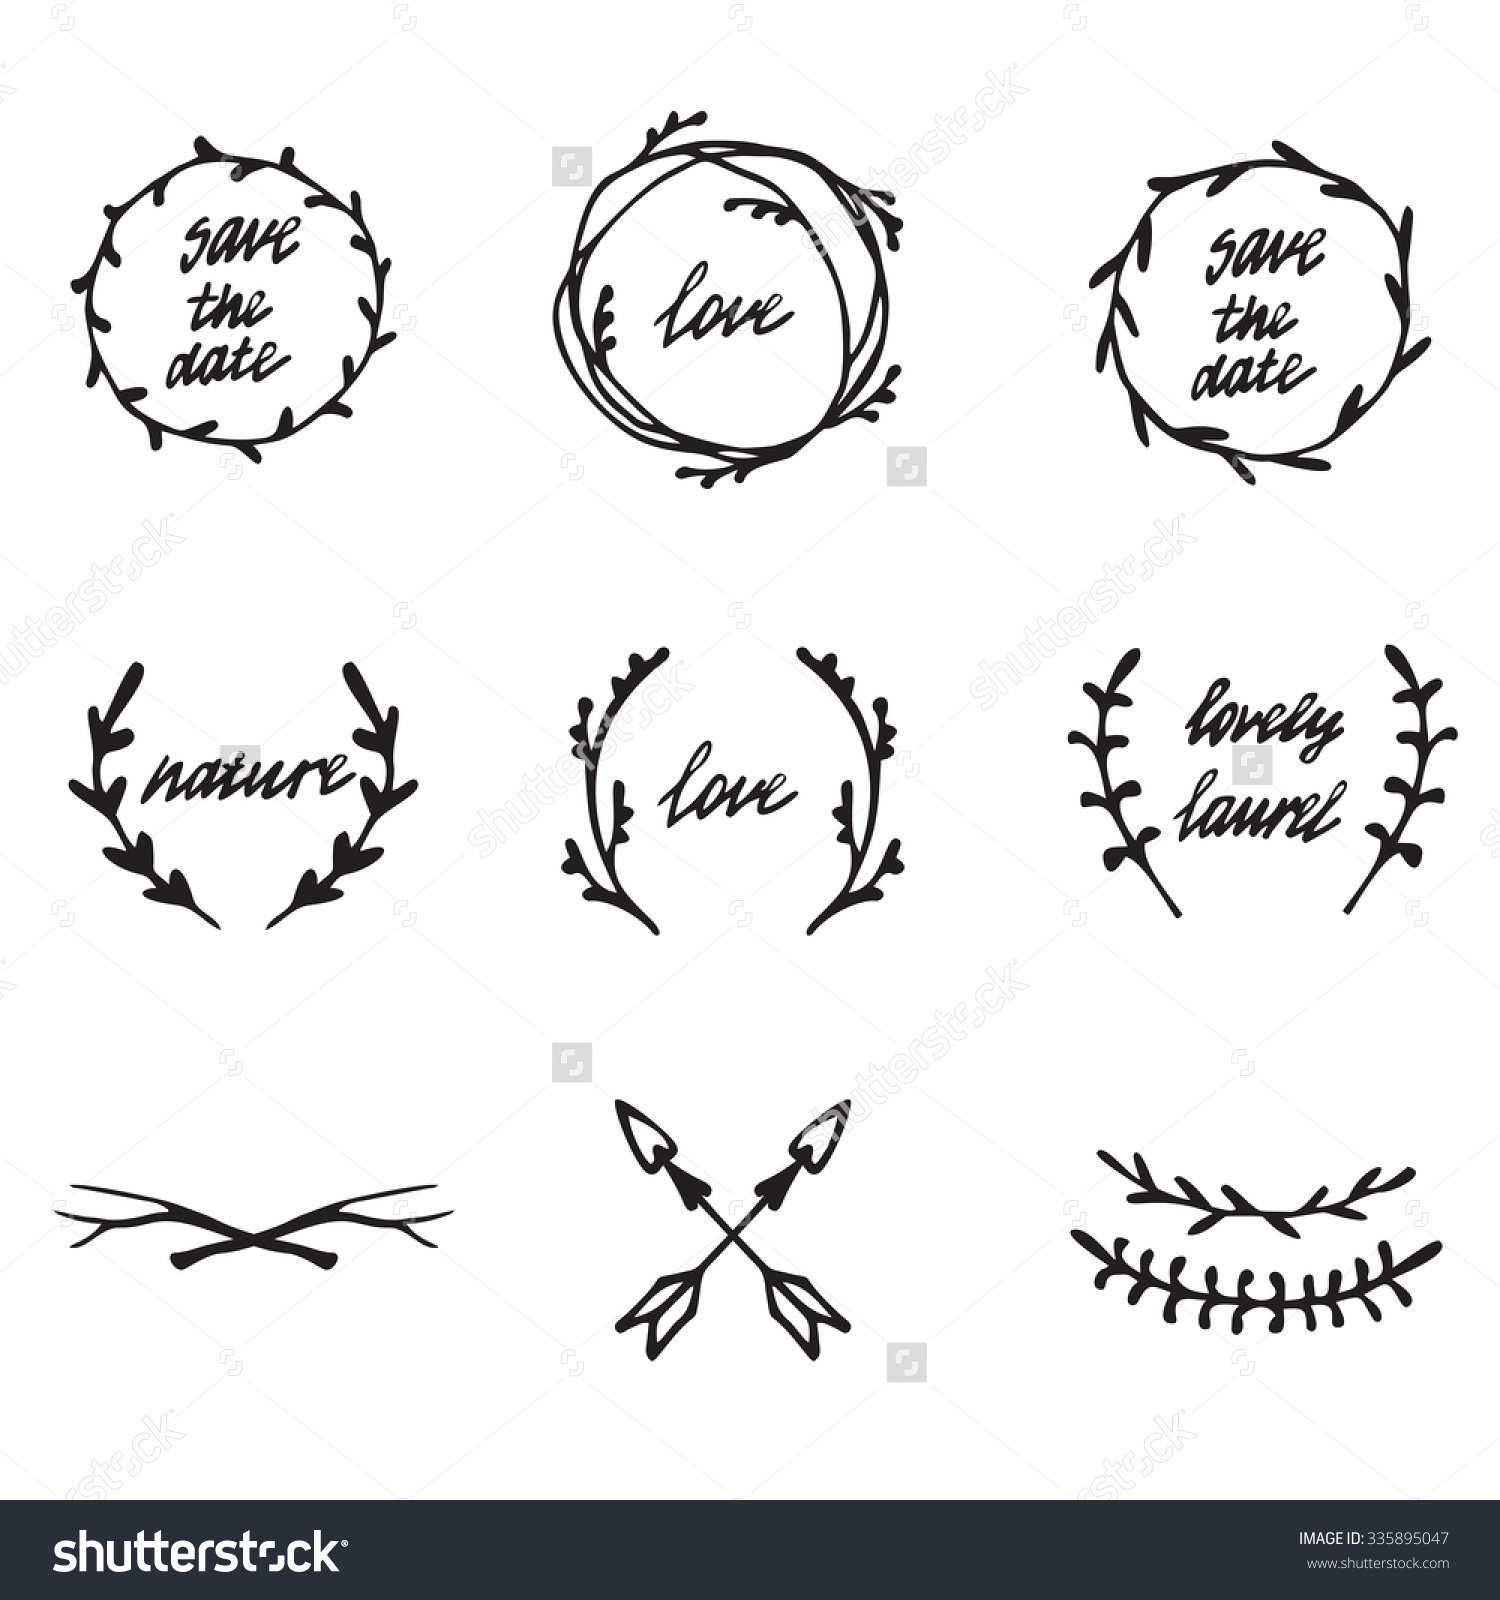 Rustic Twig Wreath Png & Free Rustic Twig Wreath.png.